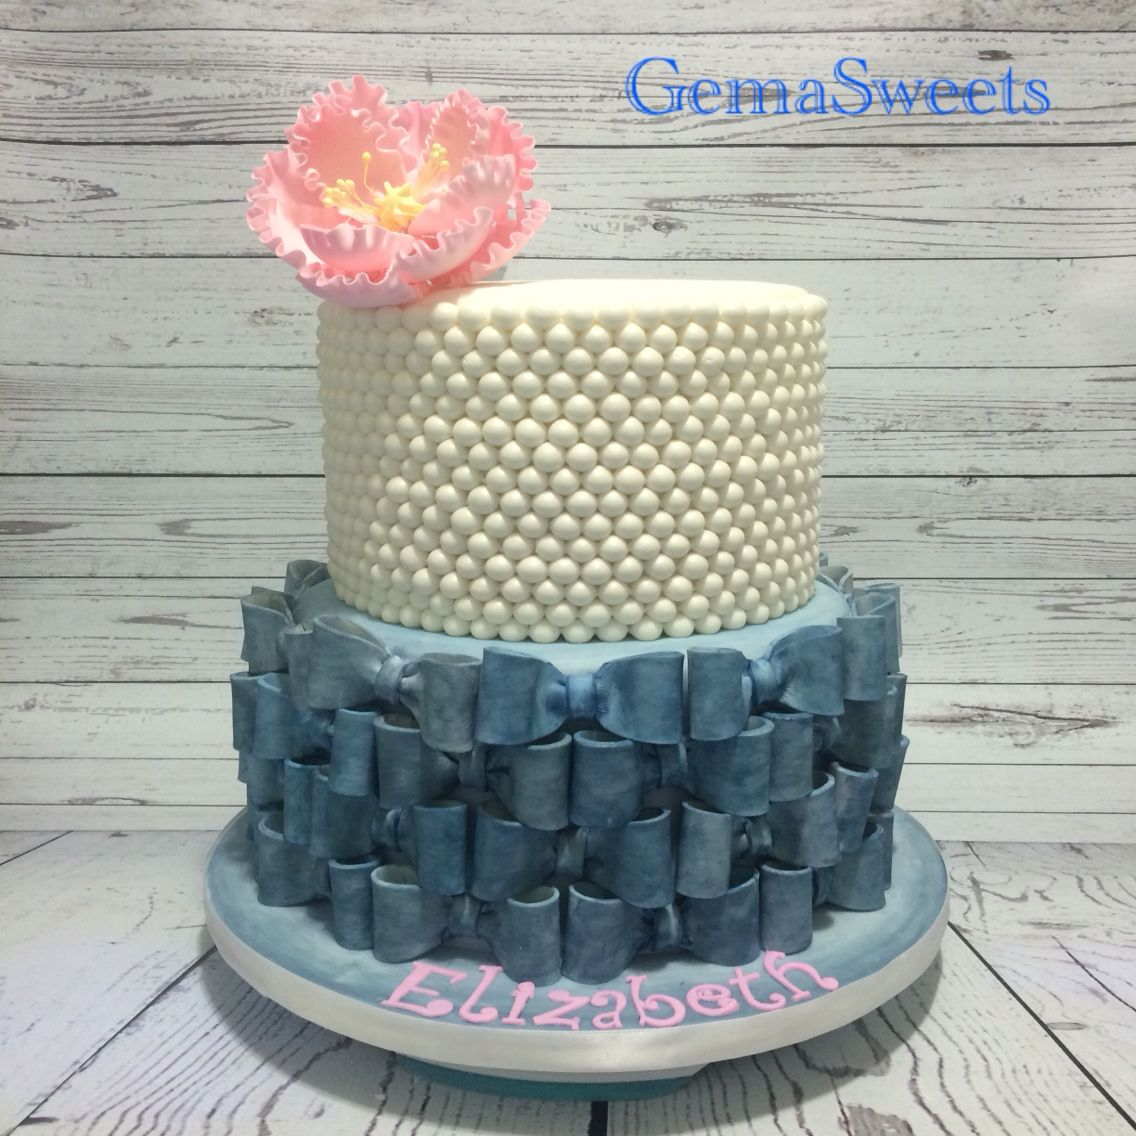 Denim and pearls theme baby shower cake by Gema Sweets.